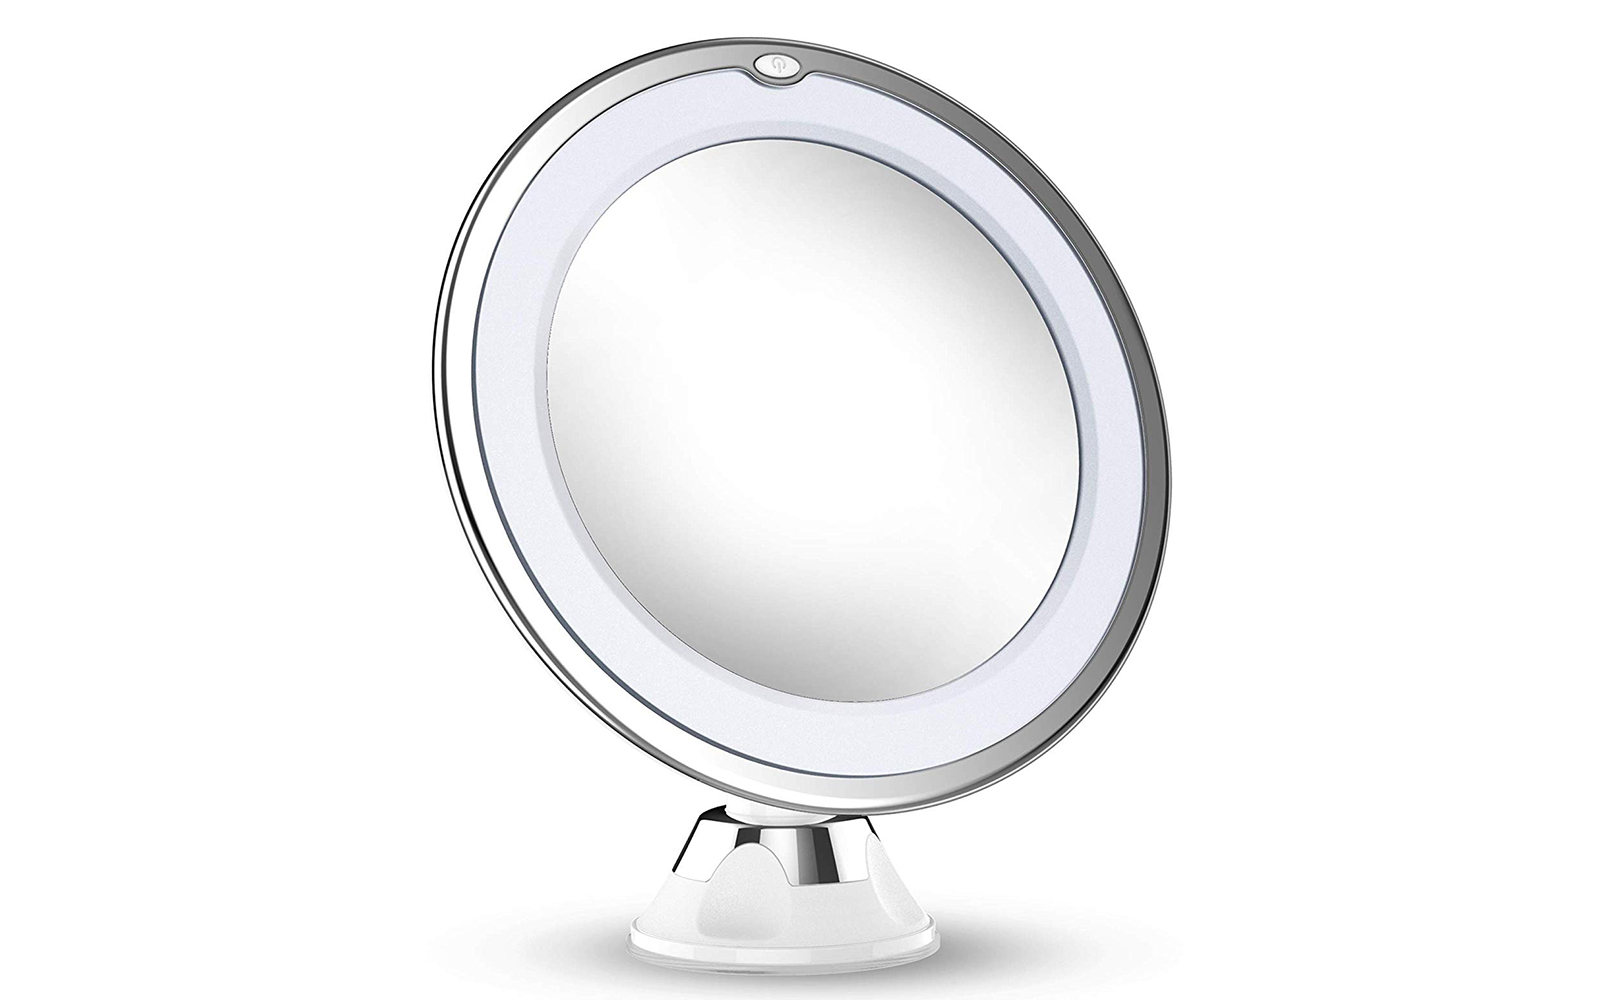 10X Magnifying Makeup Vanity Mirror With Lights